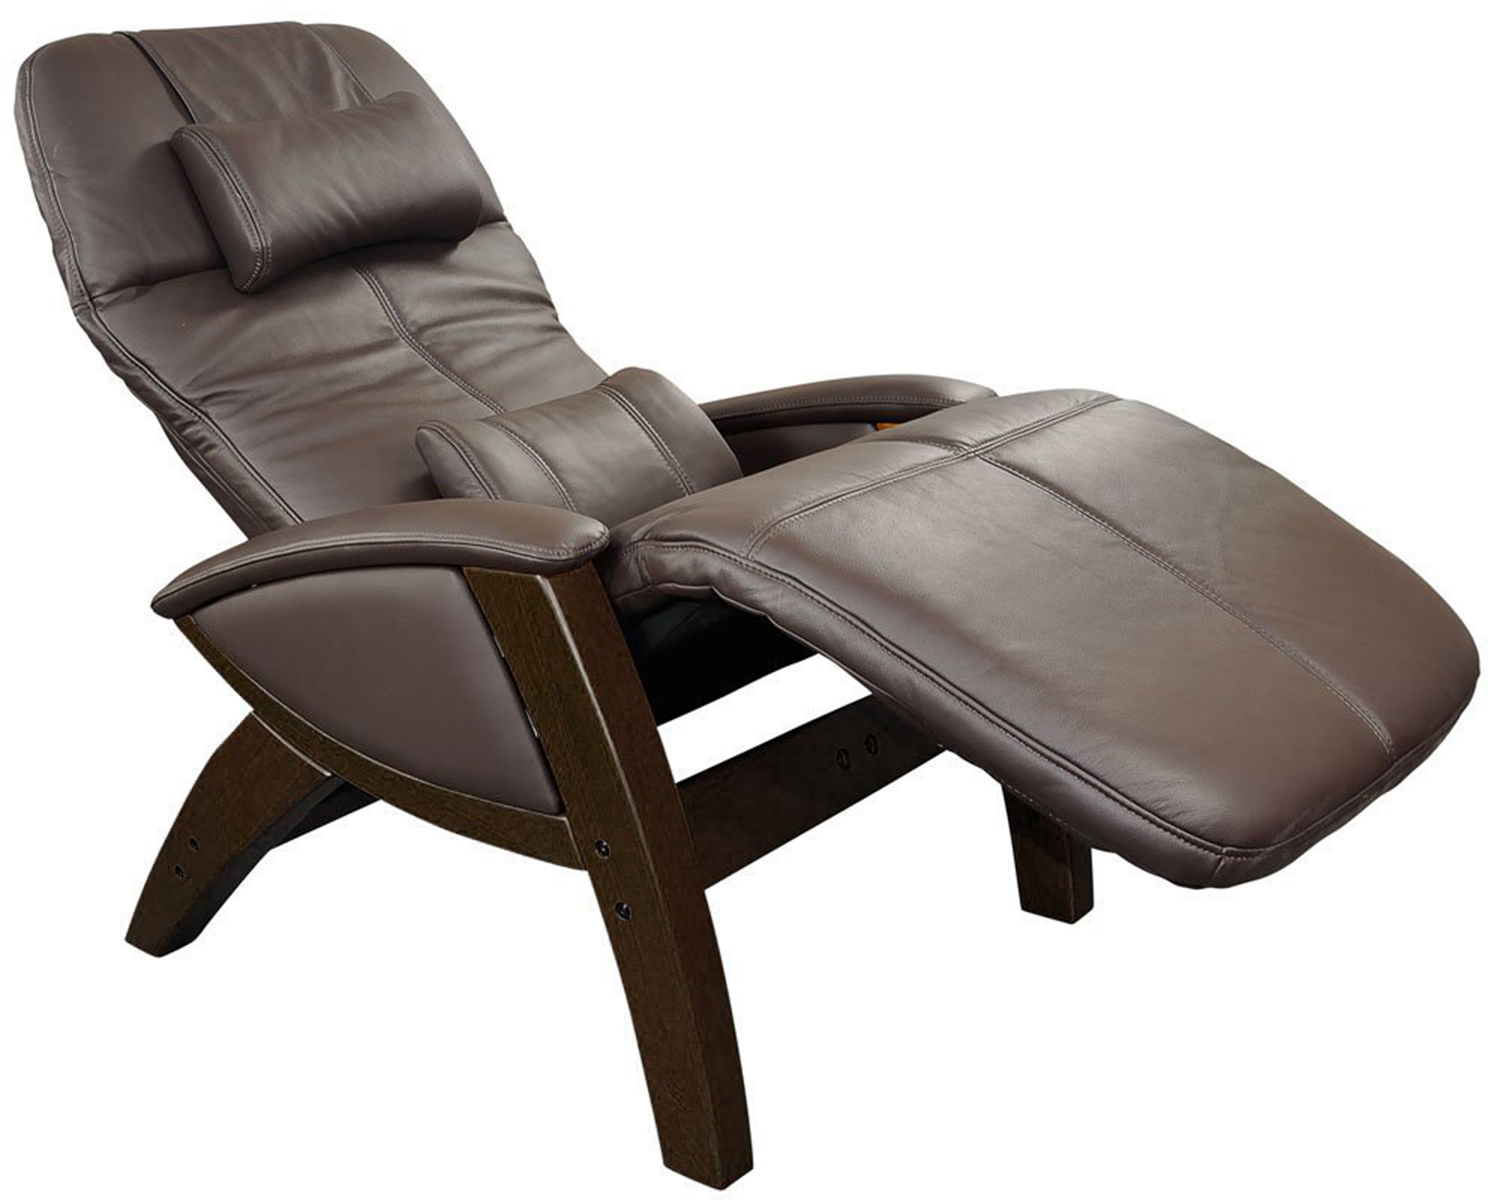 Amazing Chocolate Leather Svago SV400 Lusso Chair Zero Gravity Recliner zero gravity recliner  sc 1 st  darbylanefurniture.com & Zero gravity recliners- For luxurious relaxation use zero gravity ... islam-shia.org